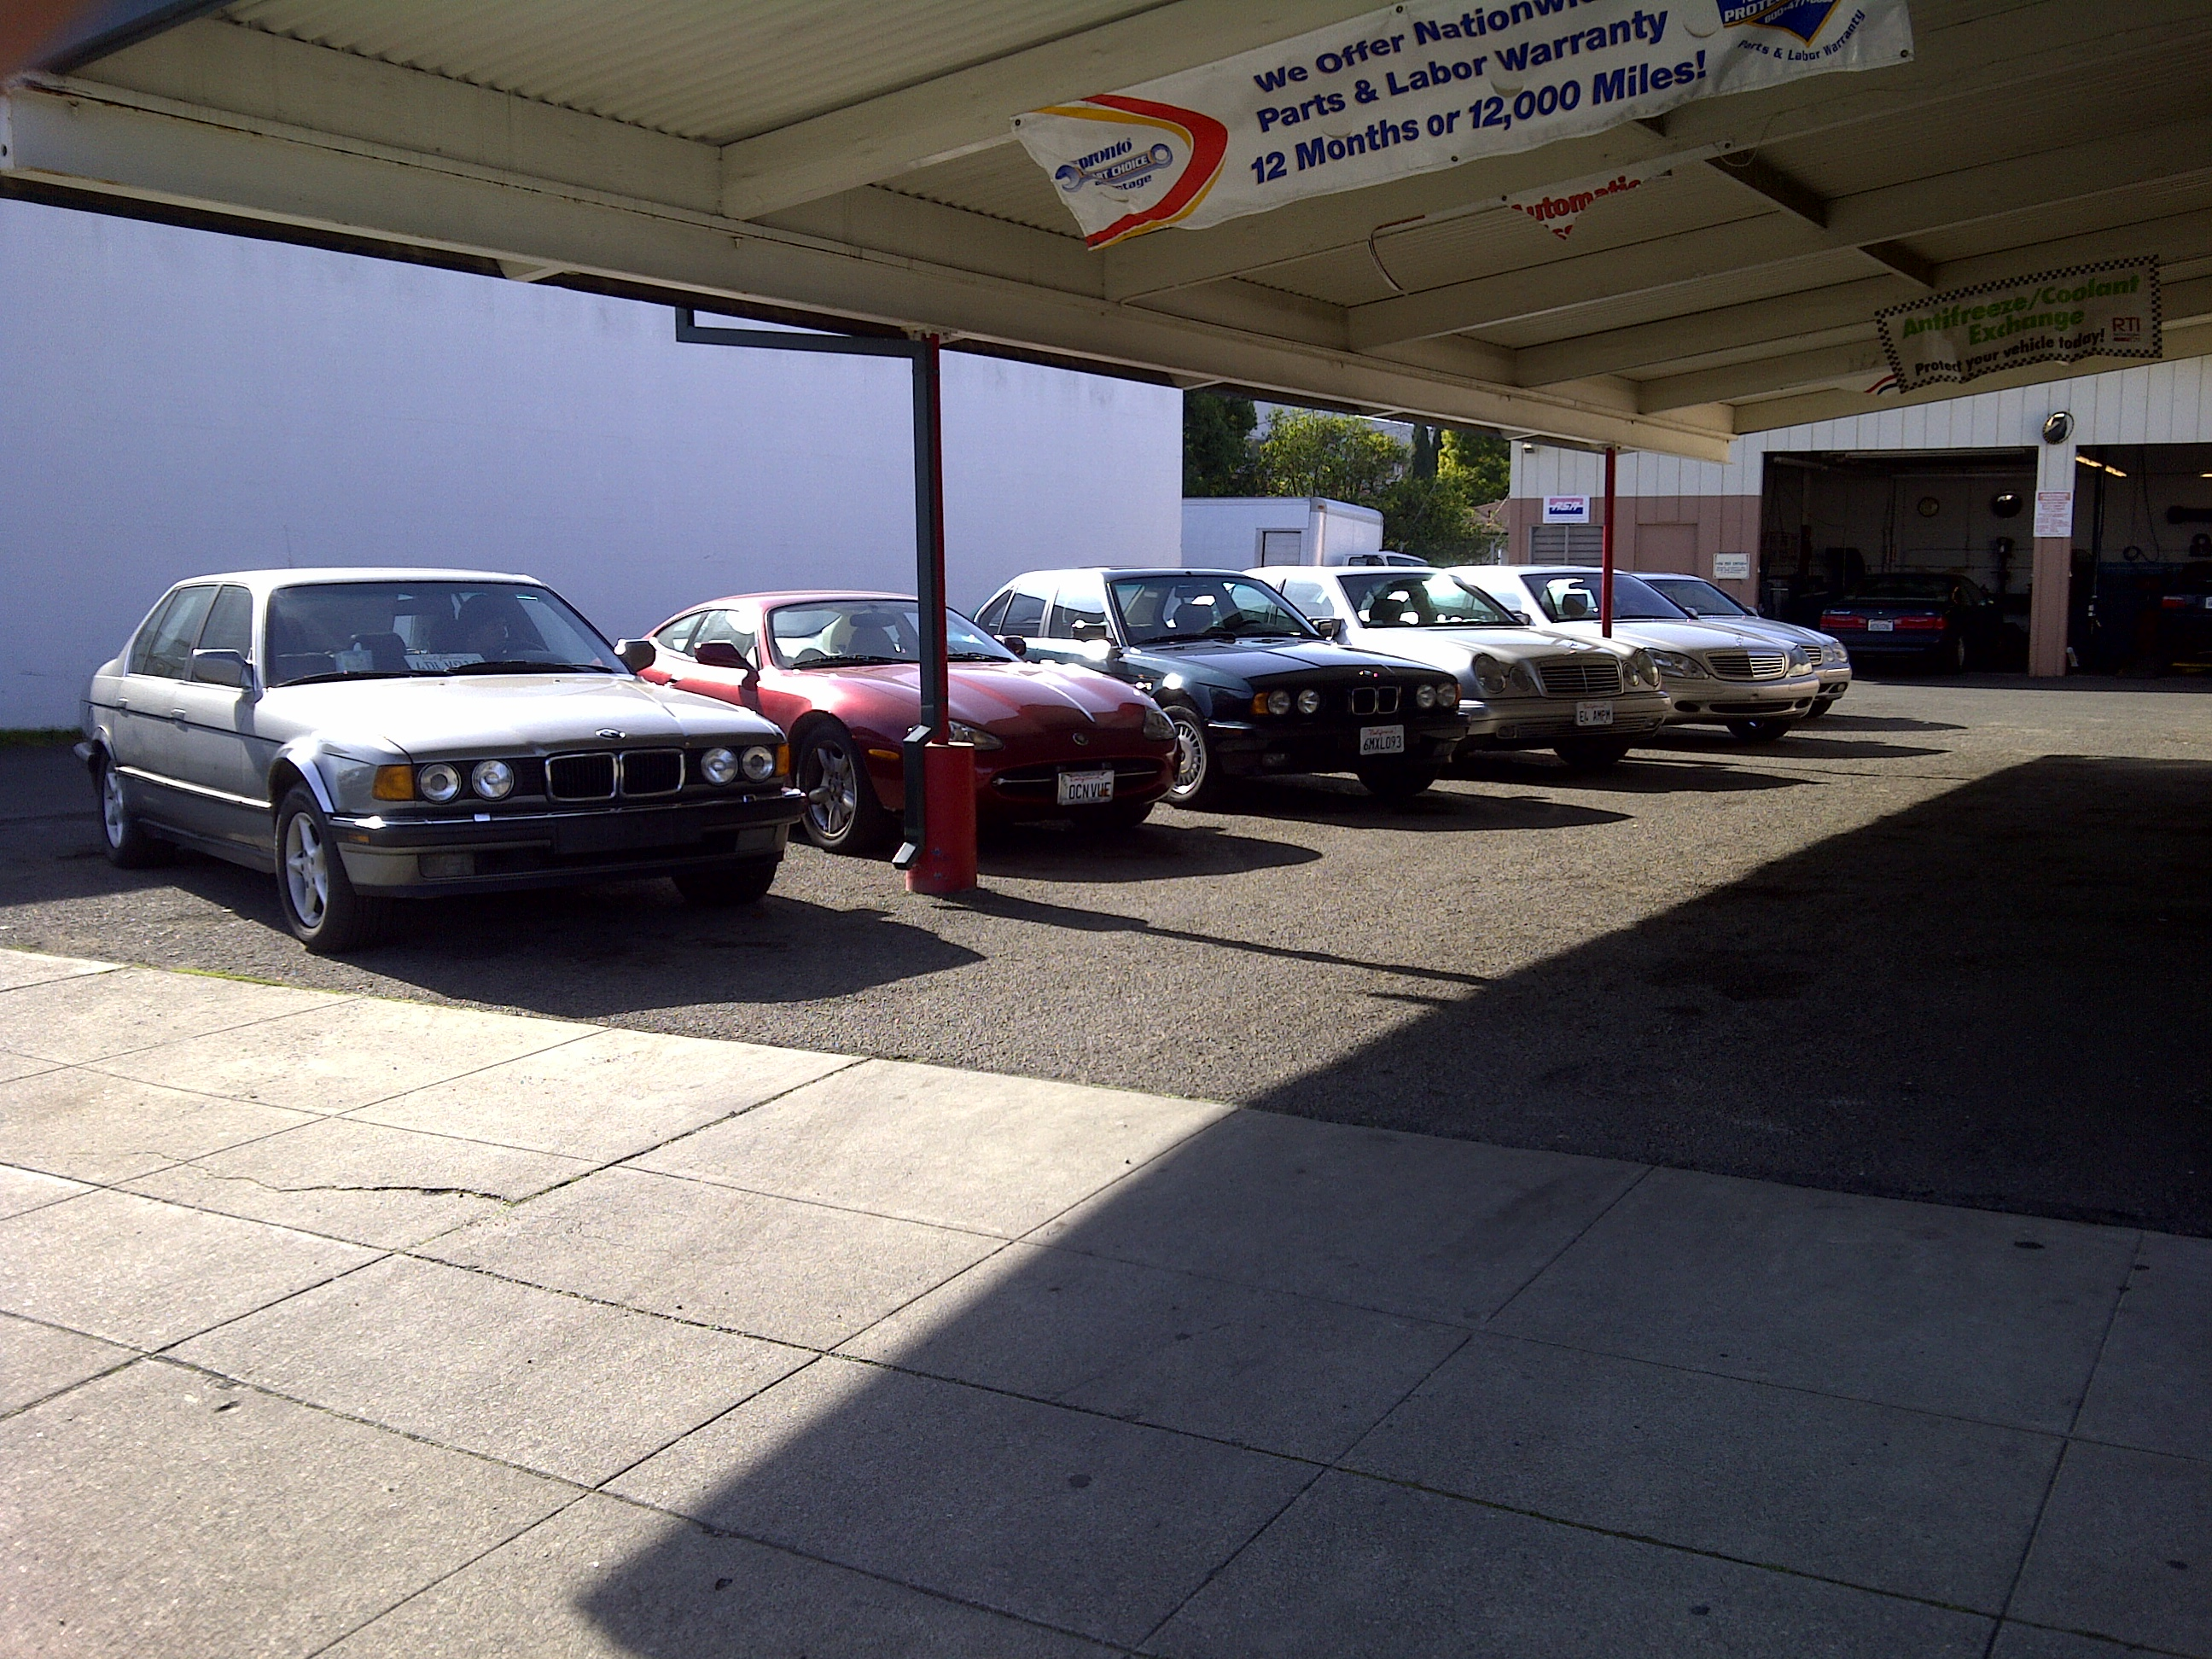 Milt S Service Garage Coupons Near Me In Vallejo 8coupons